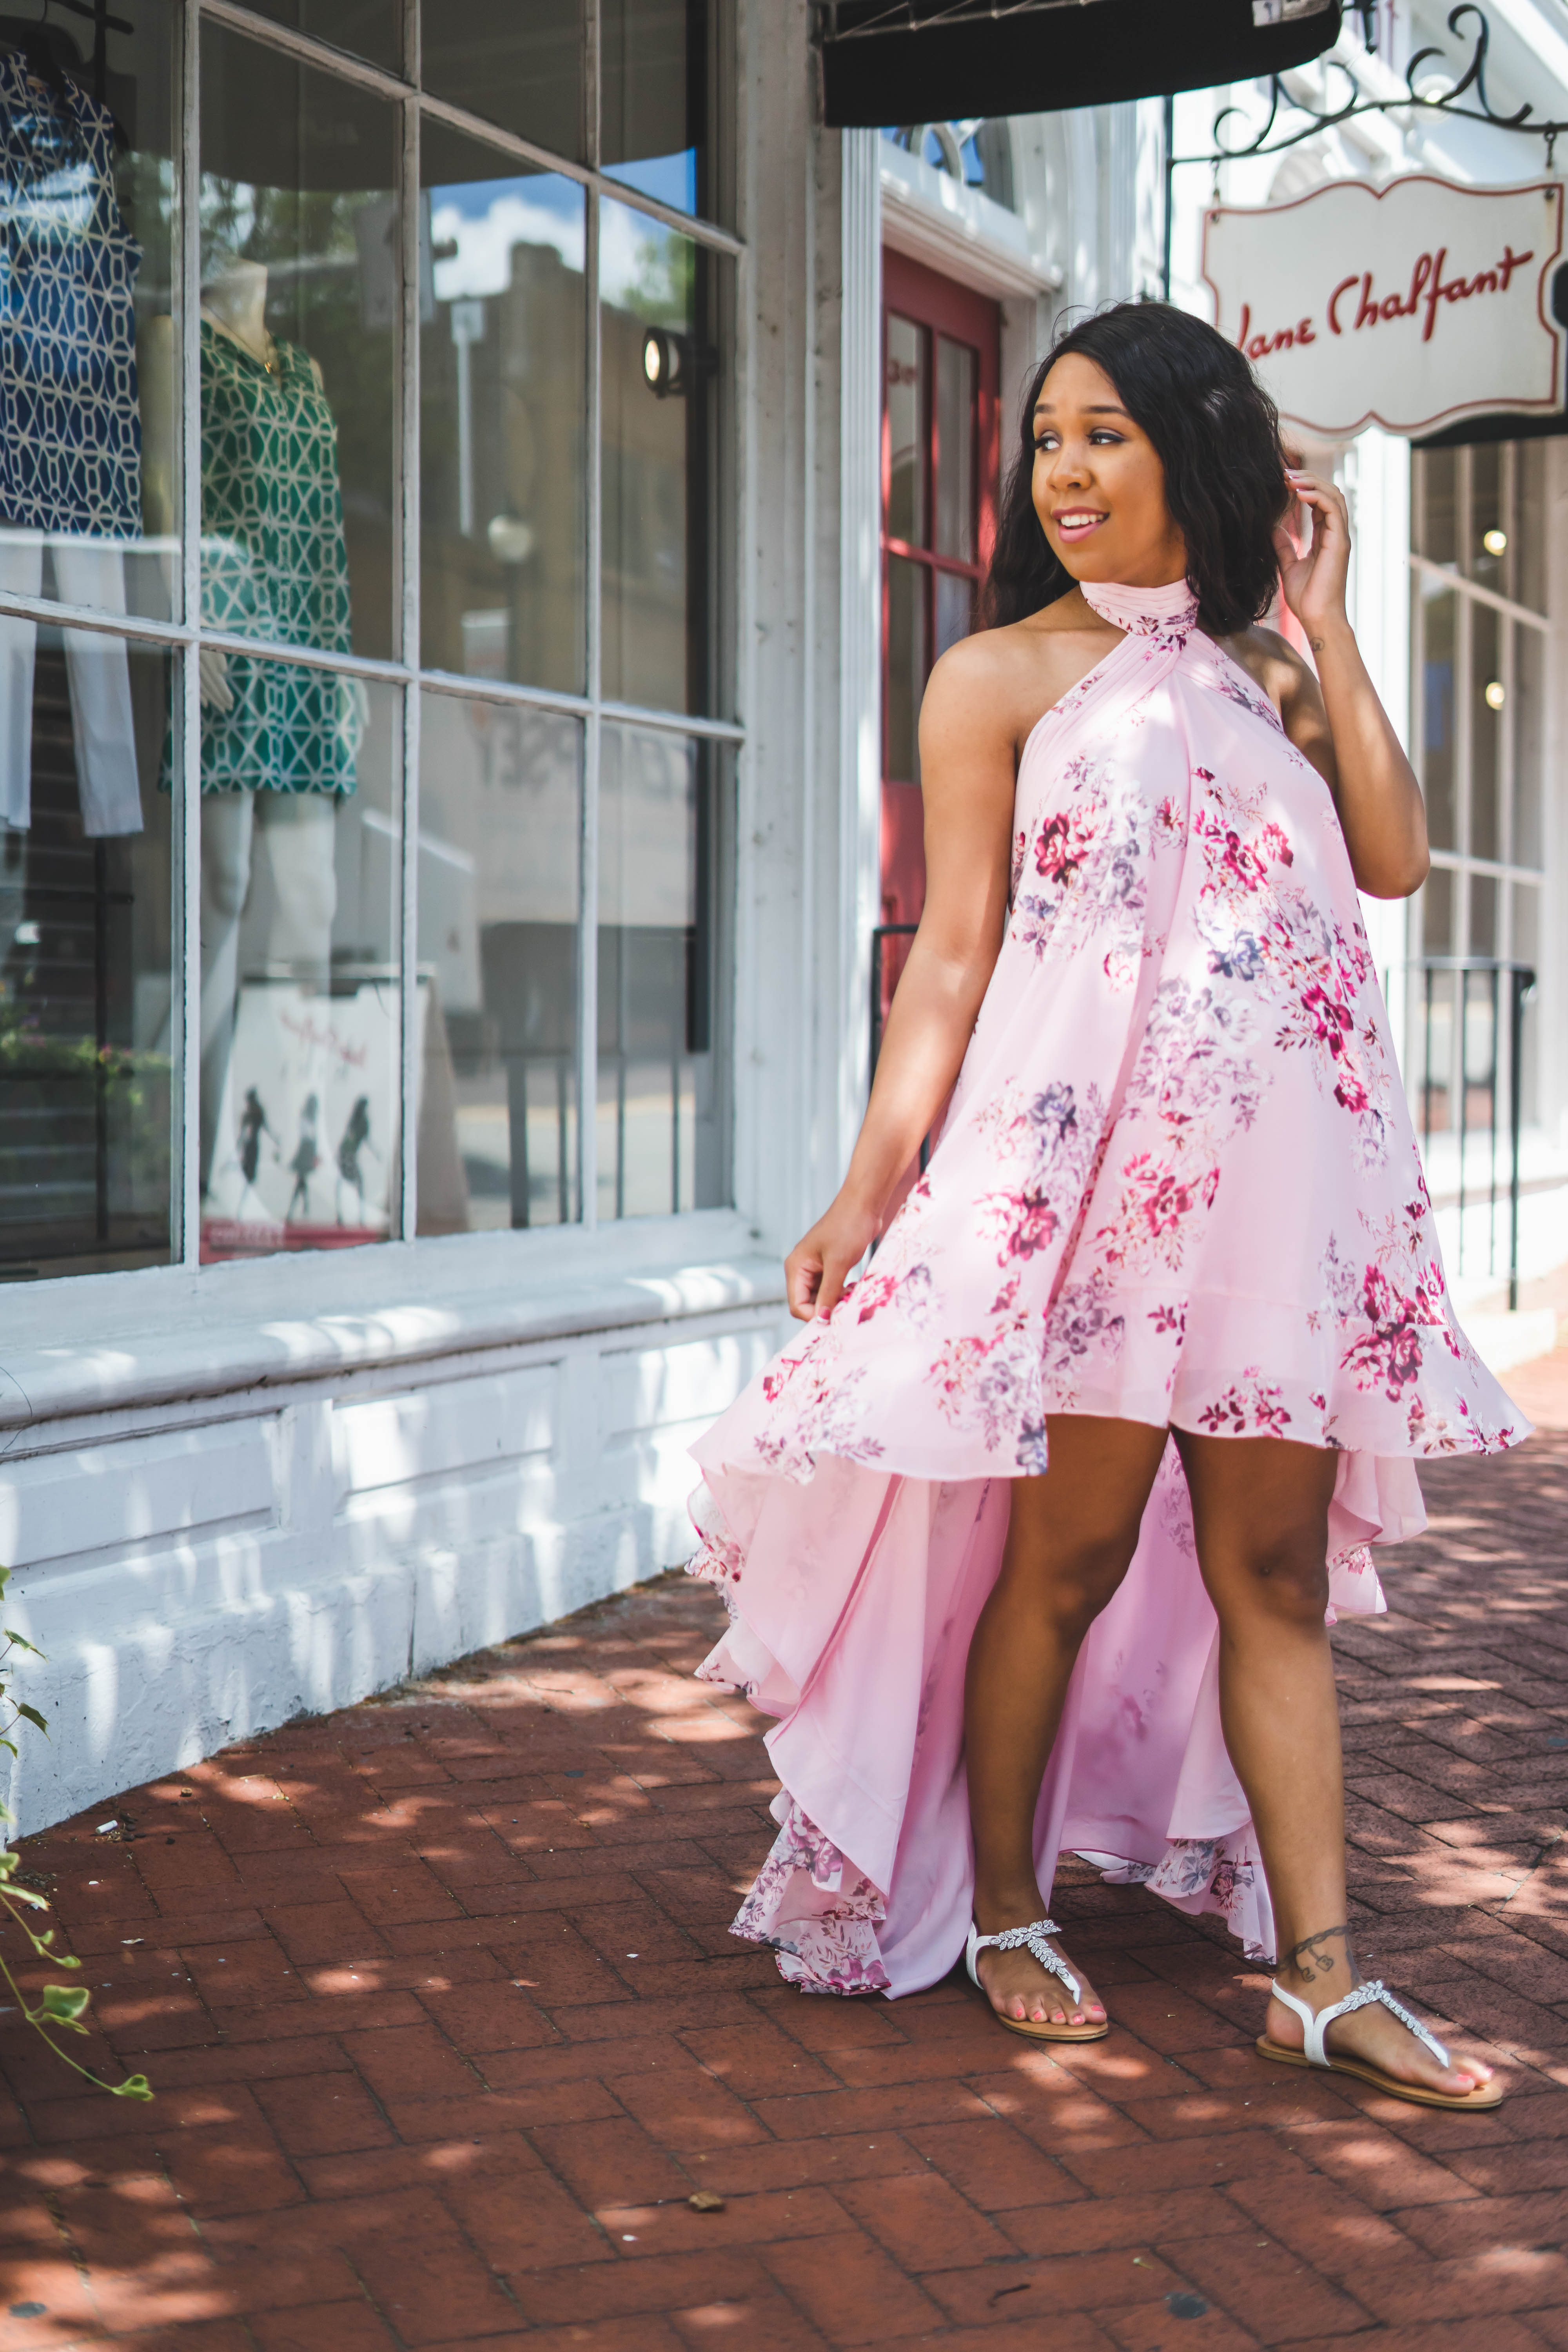 LivingLesh wearing a conrad dress in floral